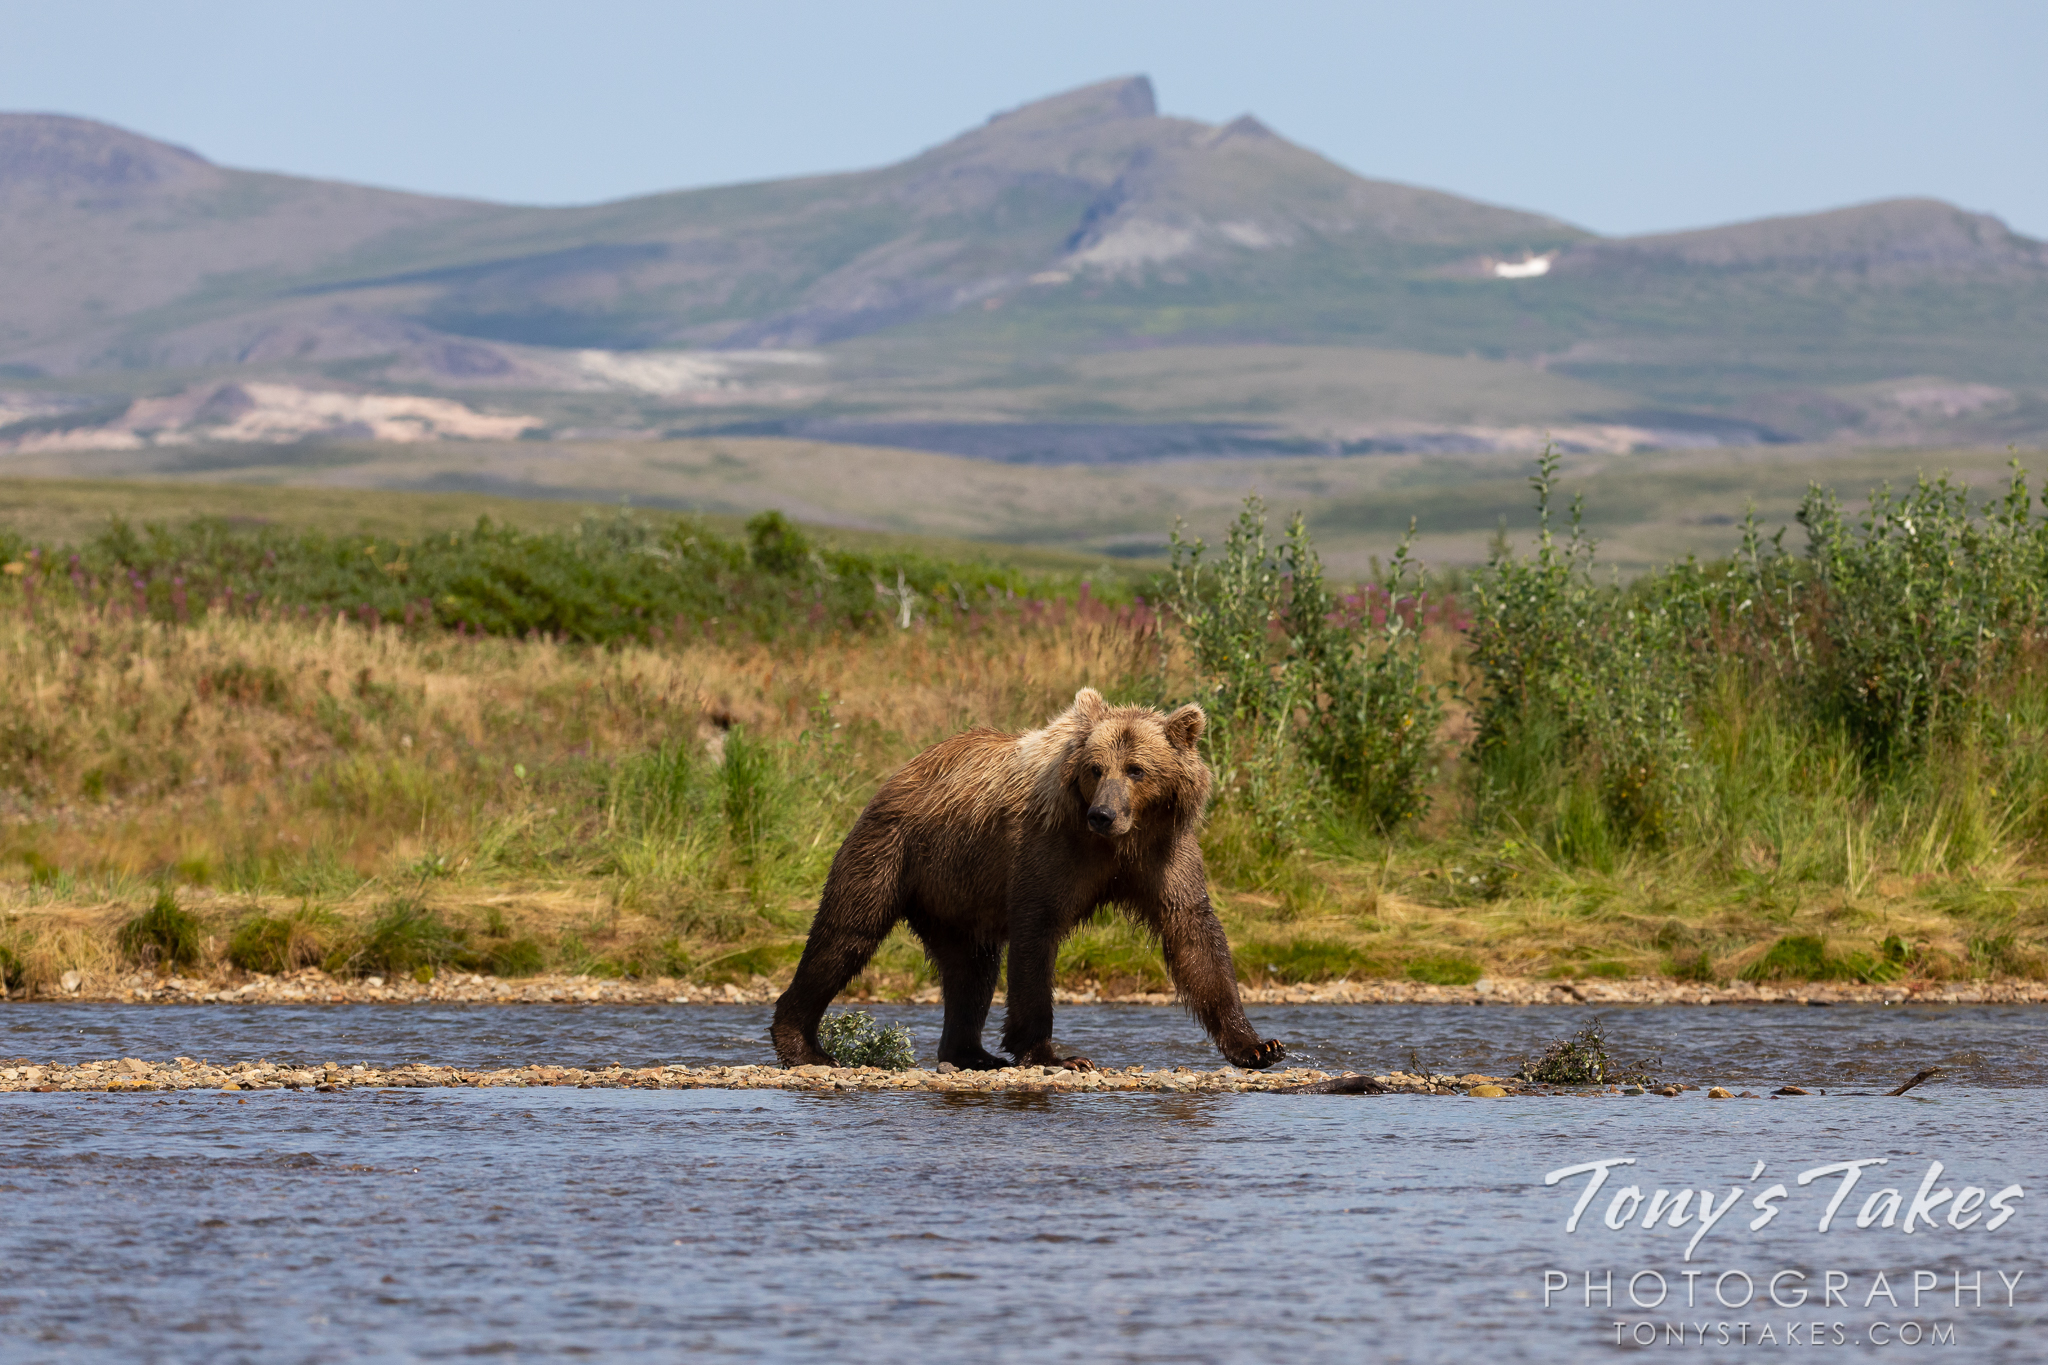 An Alaskan brown bear walks along the river in Katmai National Park and Preserve, Alaska. (© Tony's Takes)